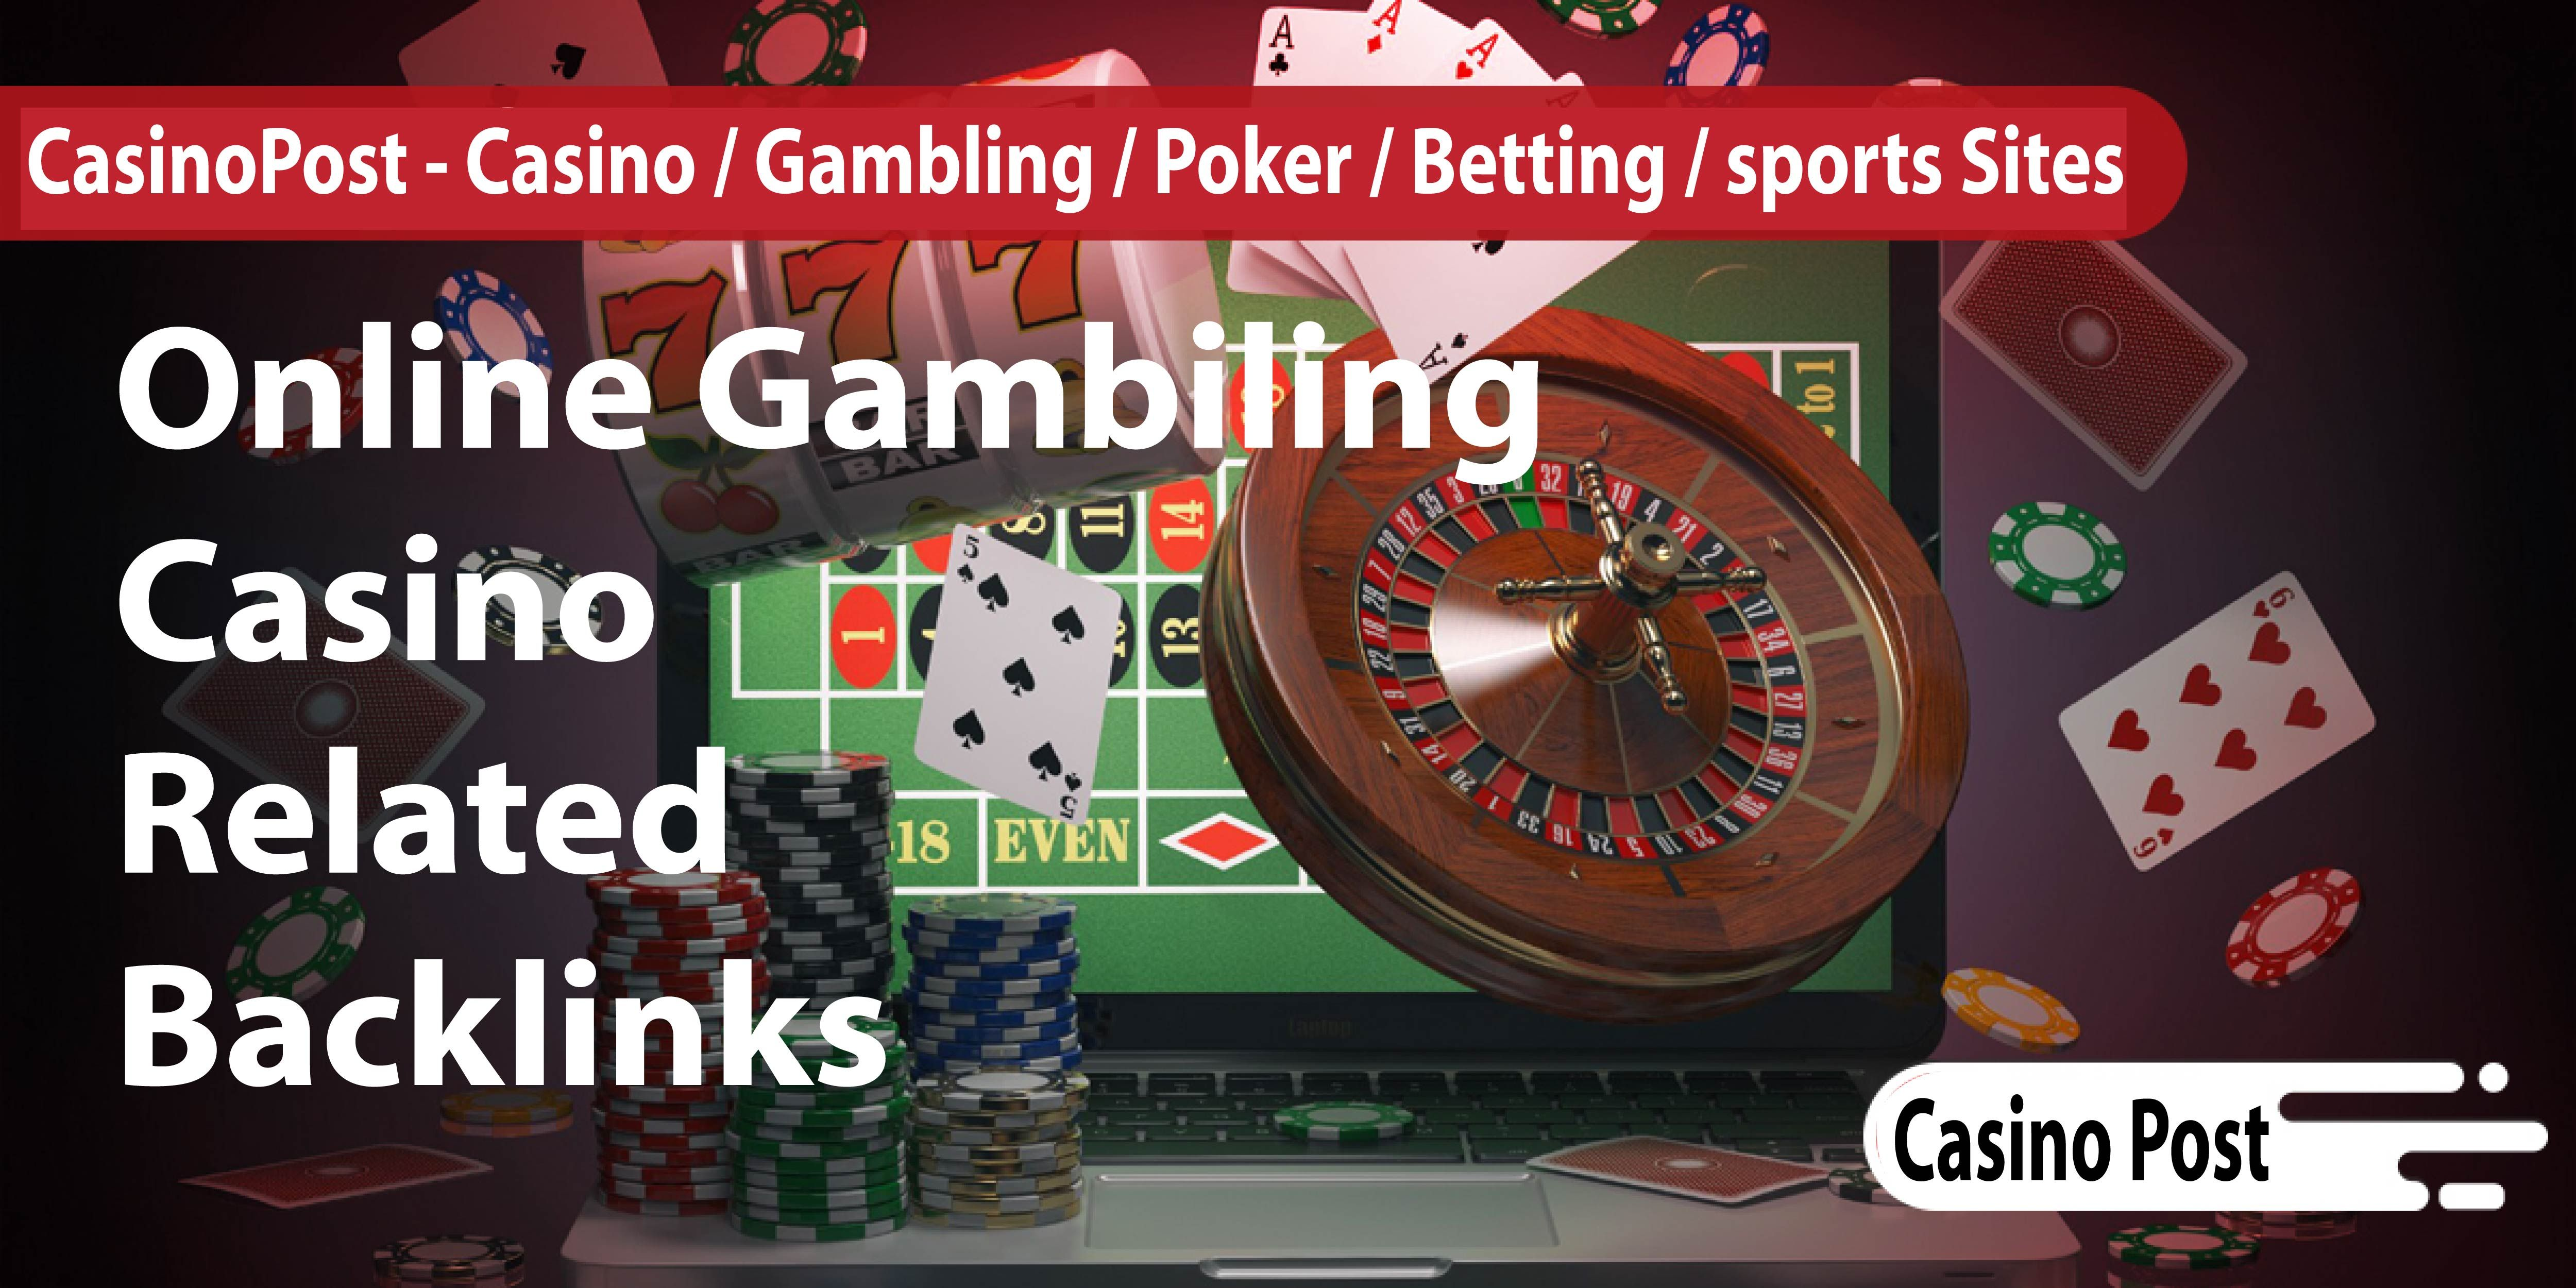 Solutions to college student gambling